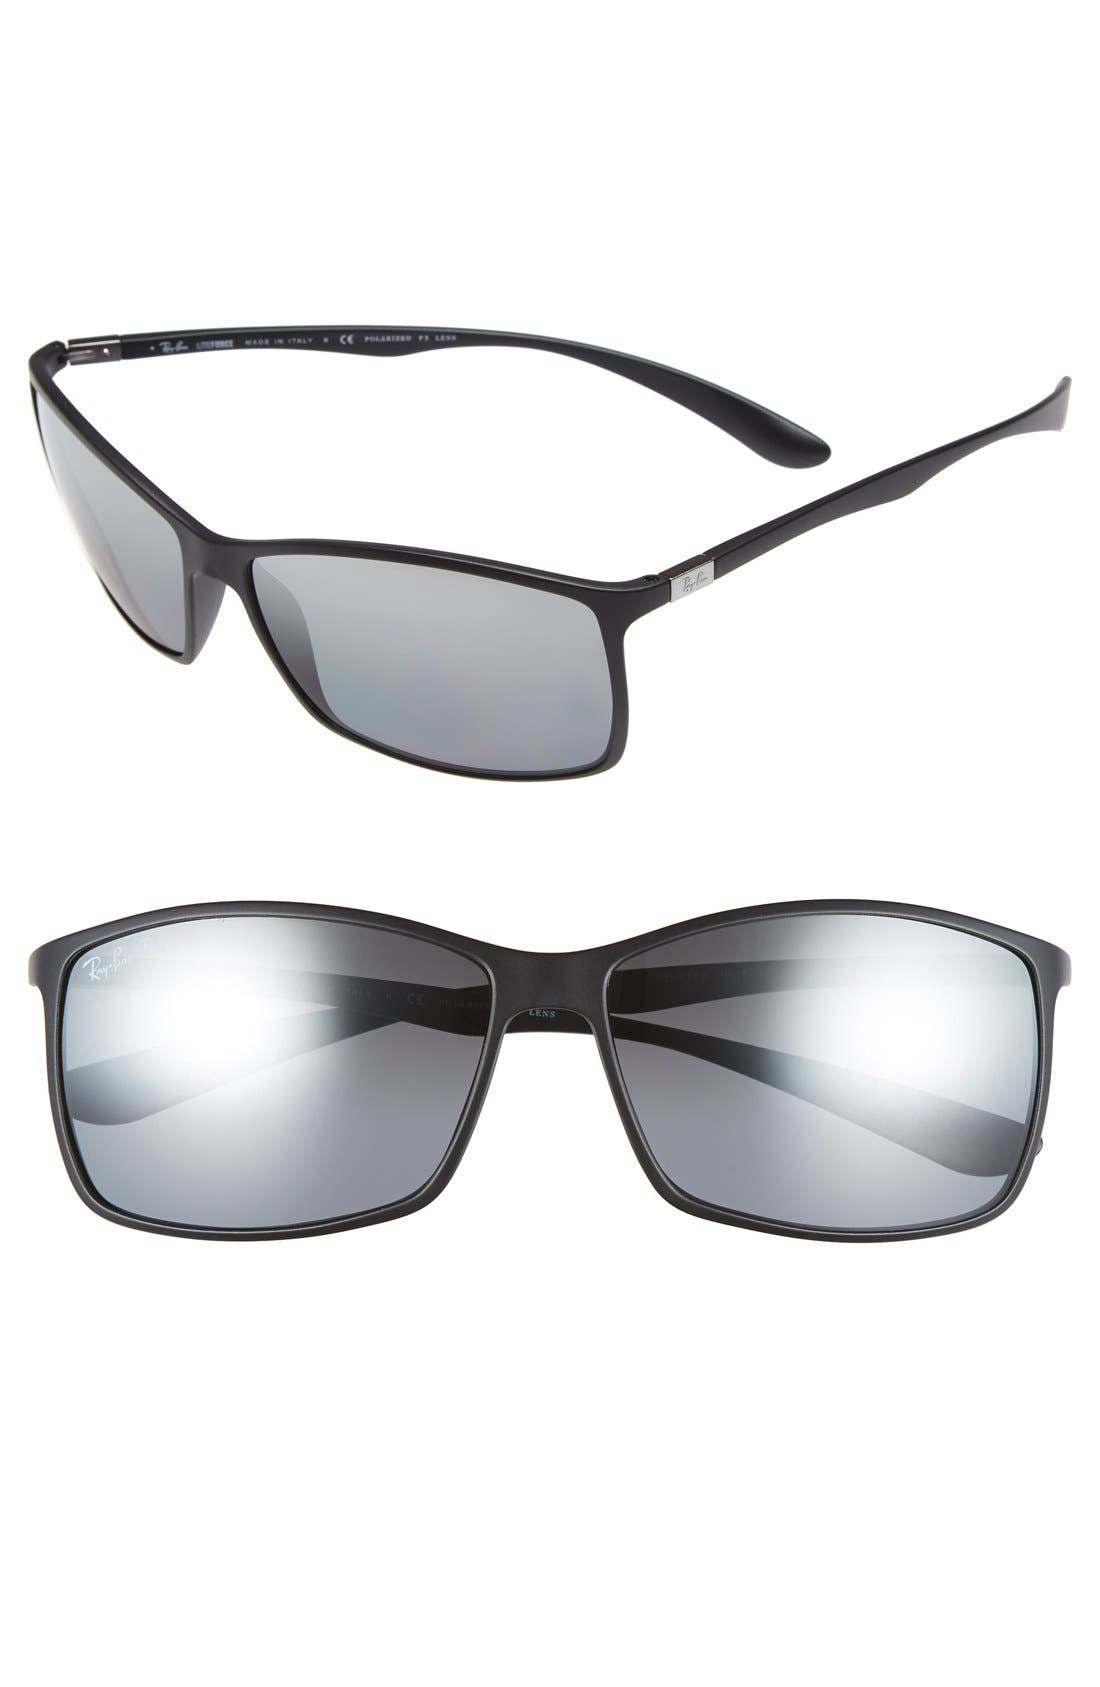 'TECH Liteforce' 62mm Polarized Sunglasses,                             Main thumbnail 1, color,                             Matte Black/ Grey